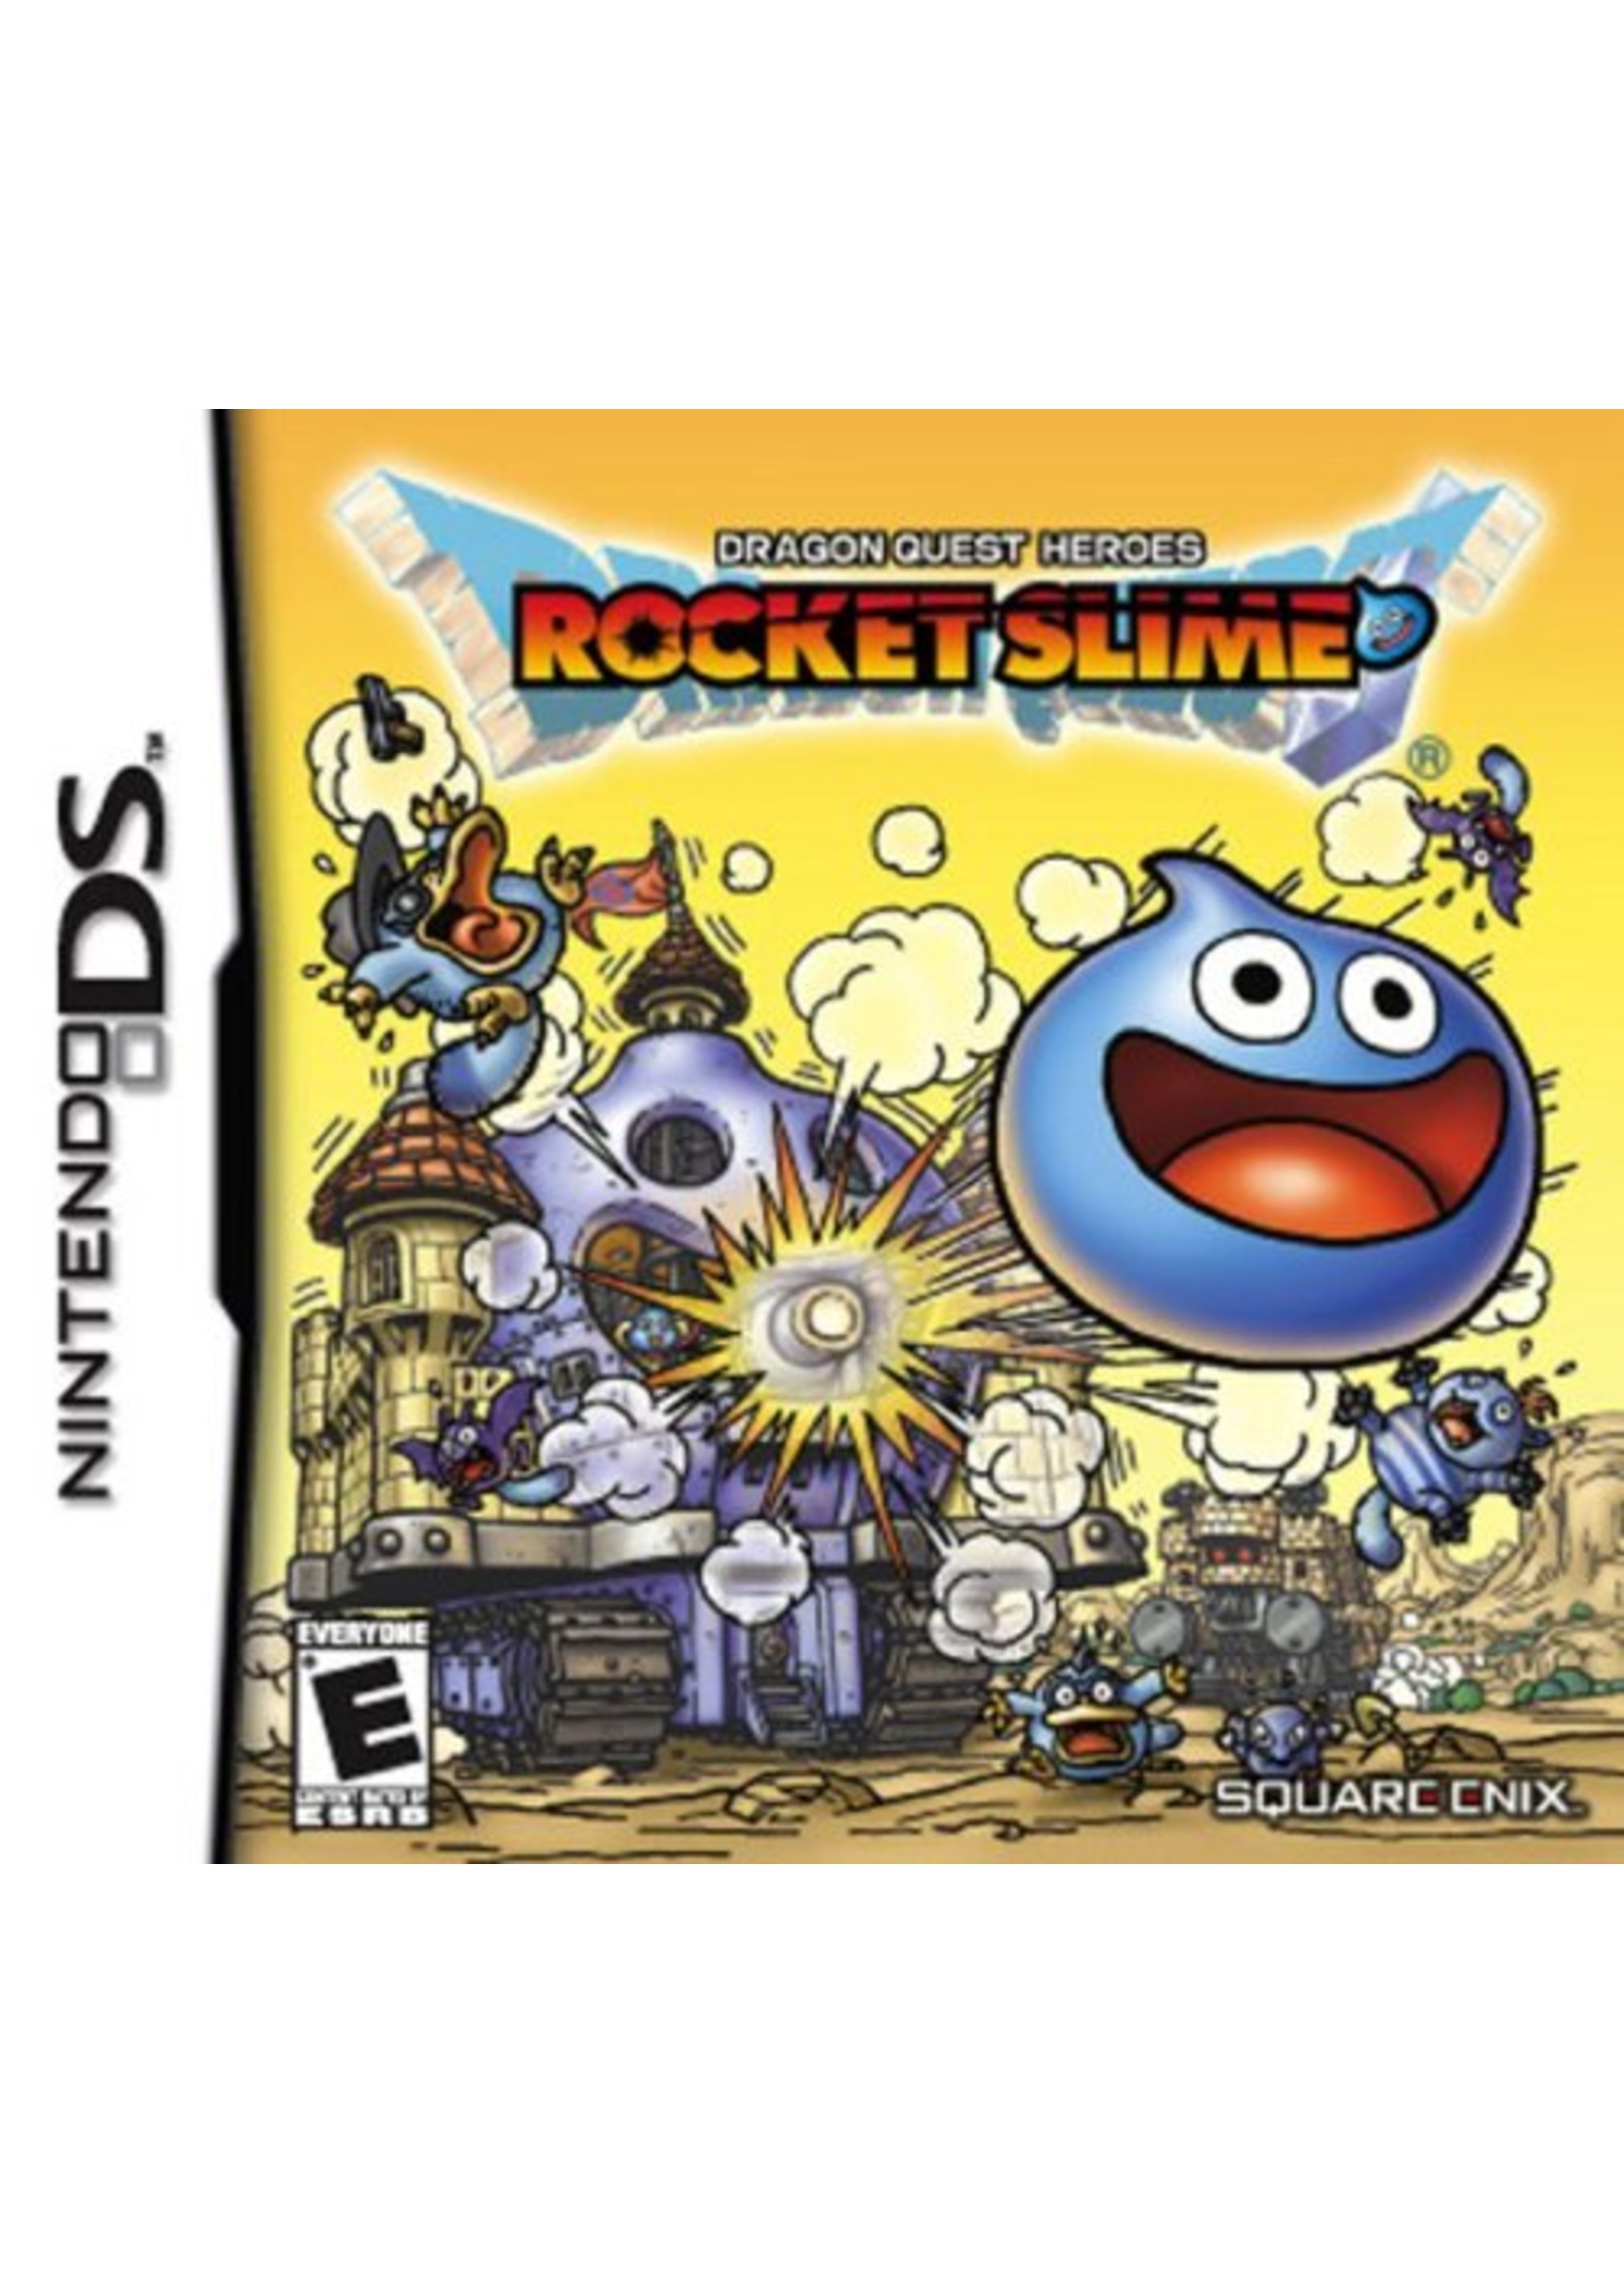 Dragon Quest: Rocket Slime - NDS PrePlayed